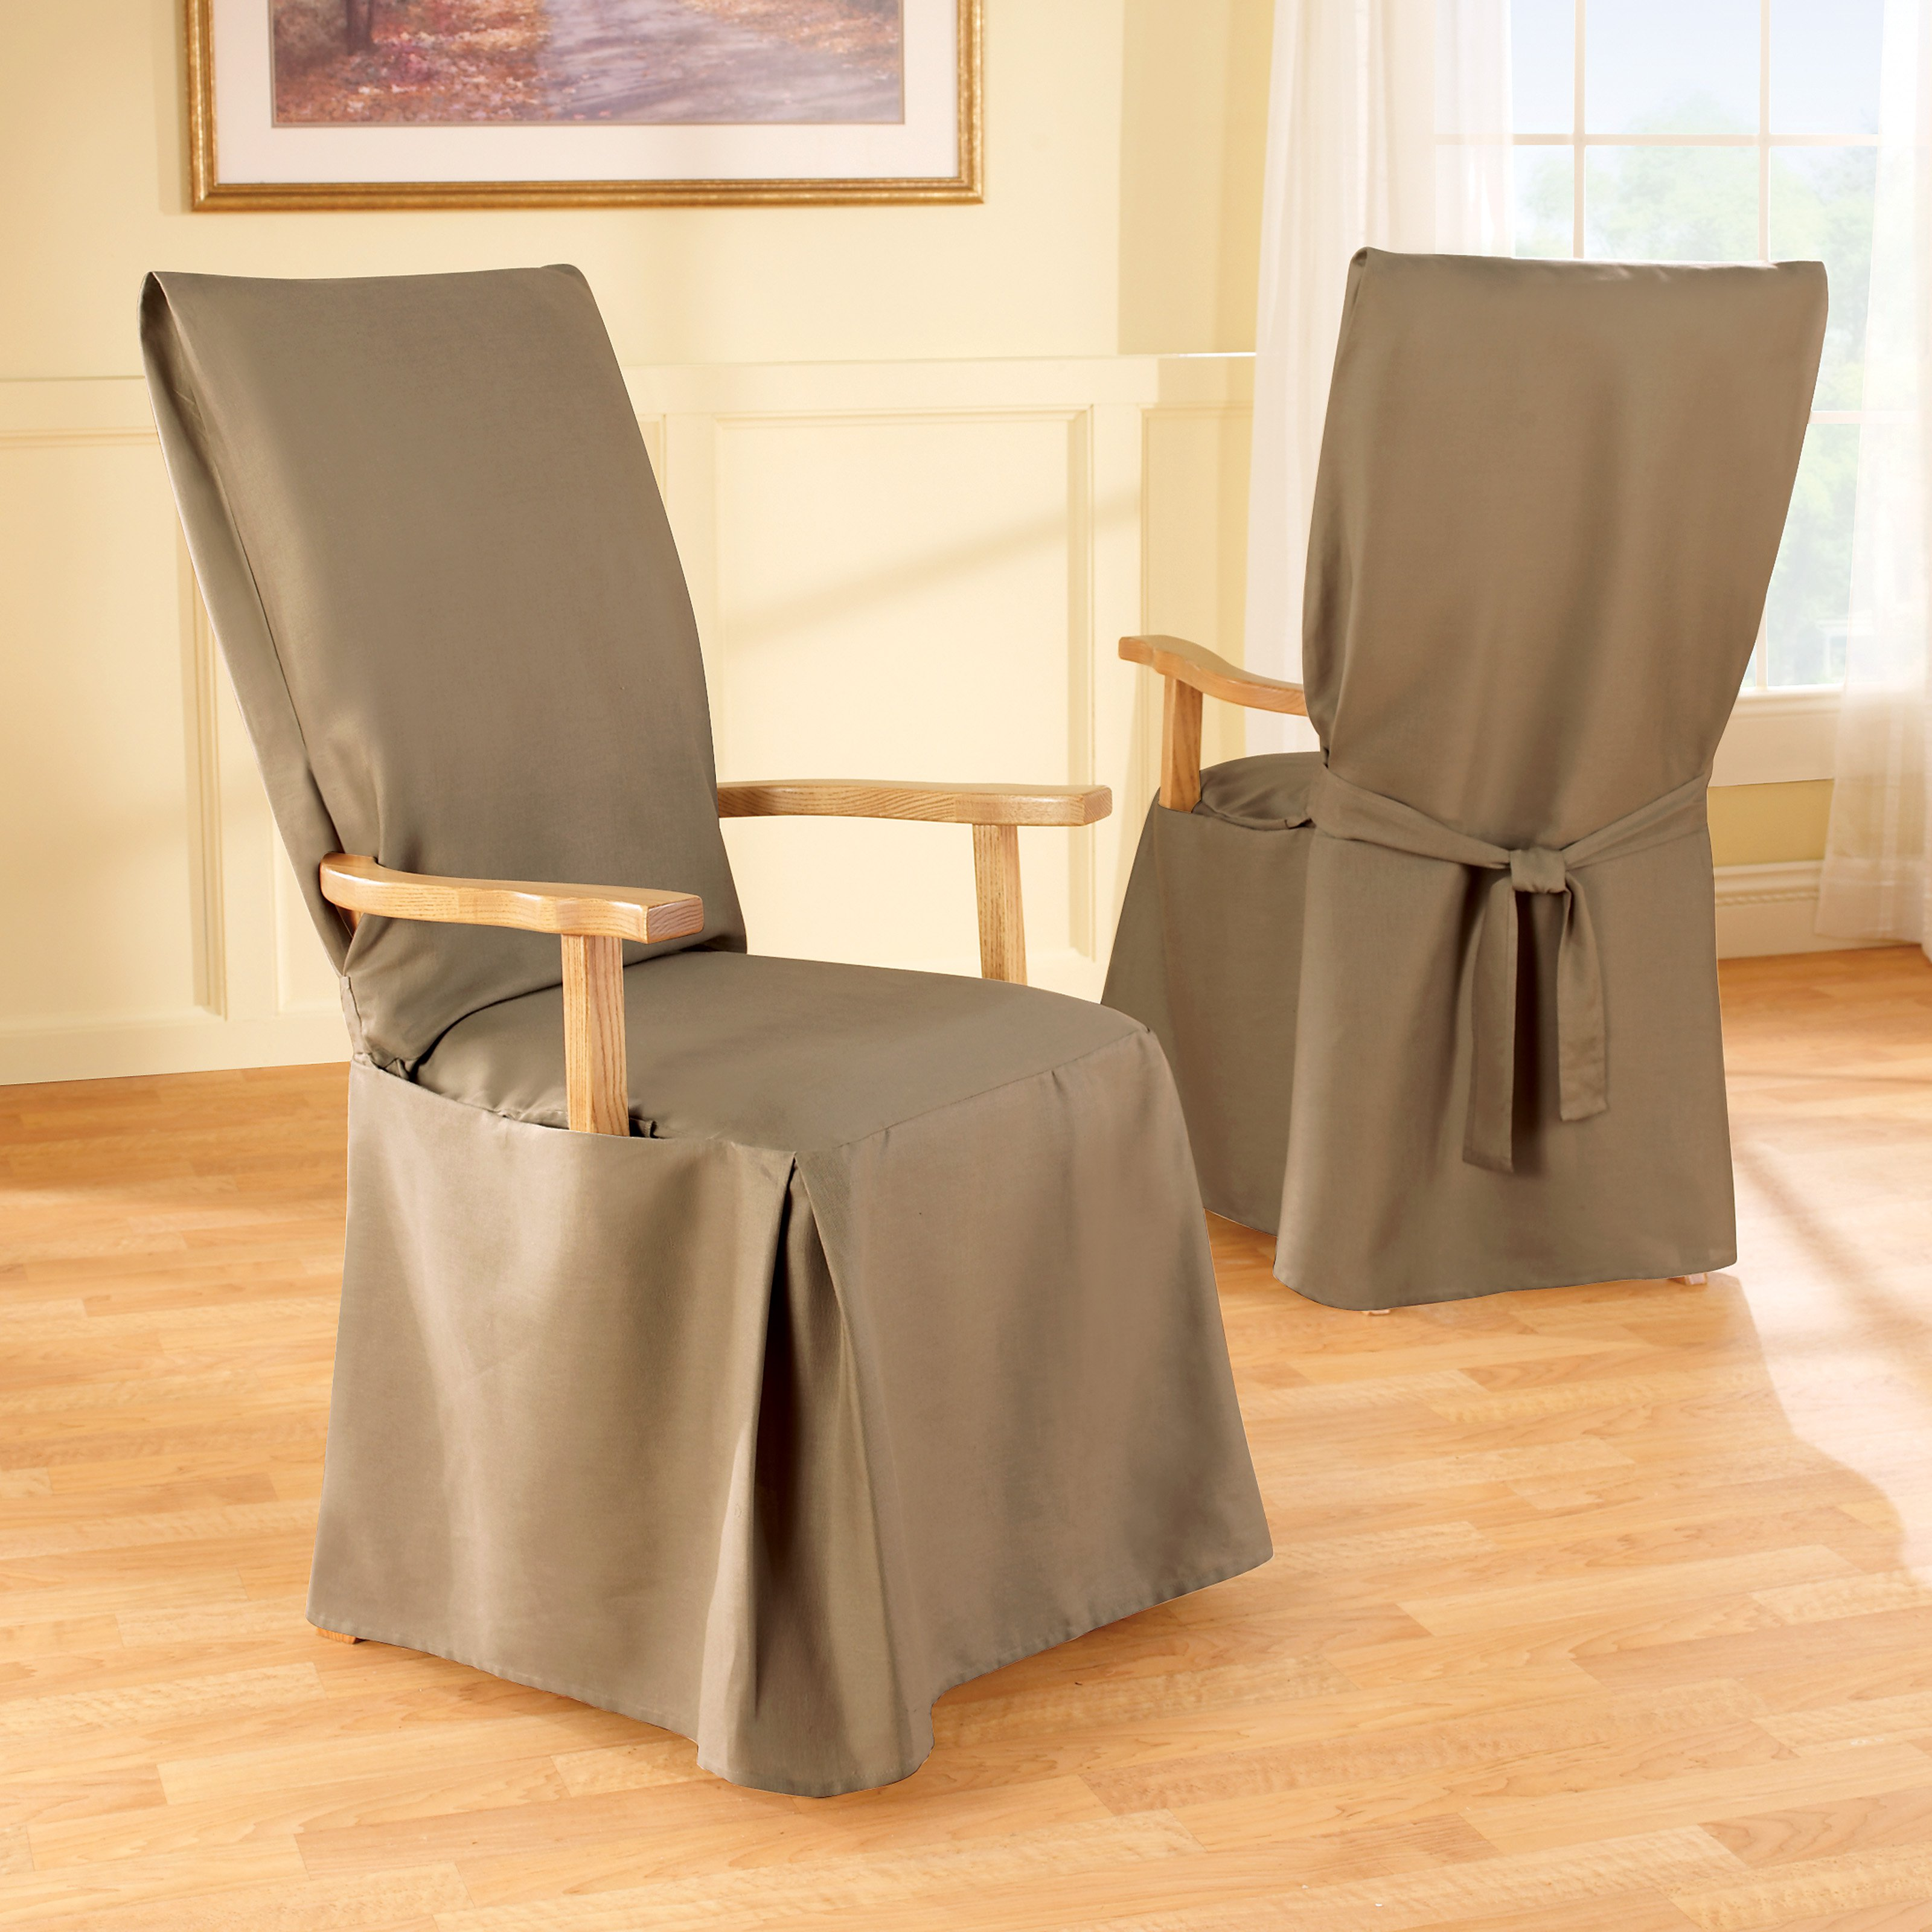 Dining room chair cushion covers Photo - 1